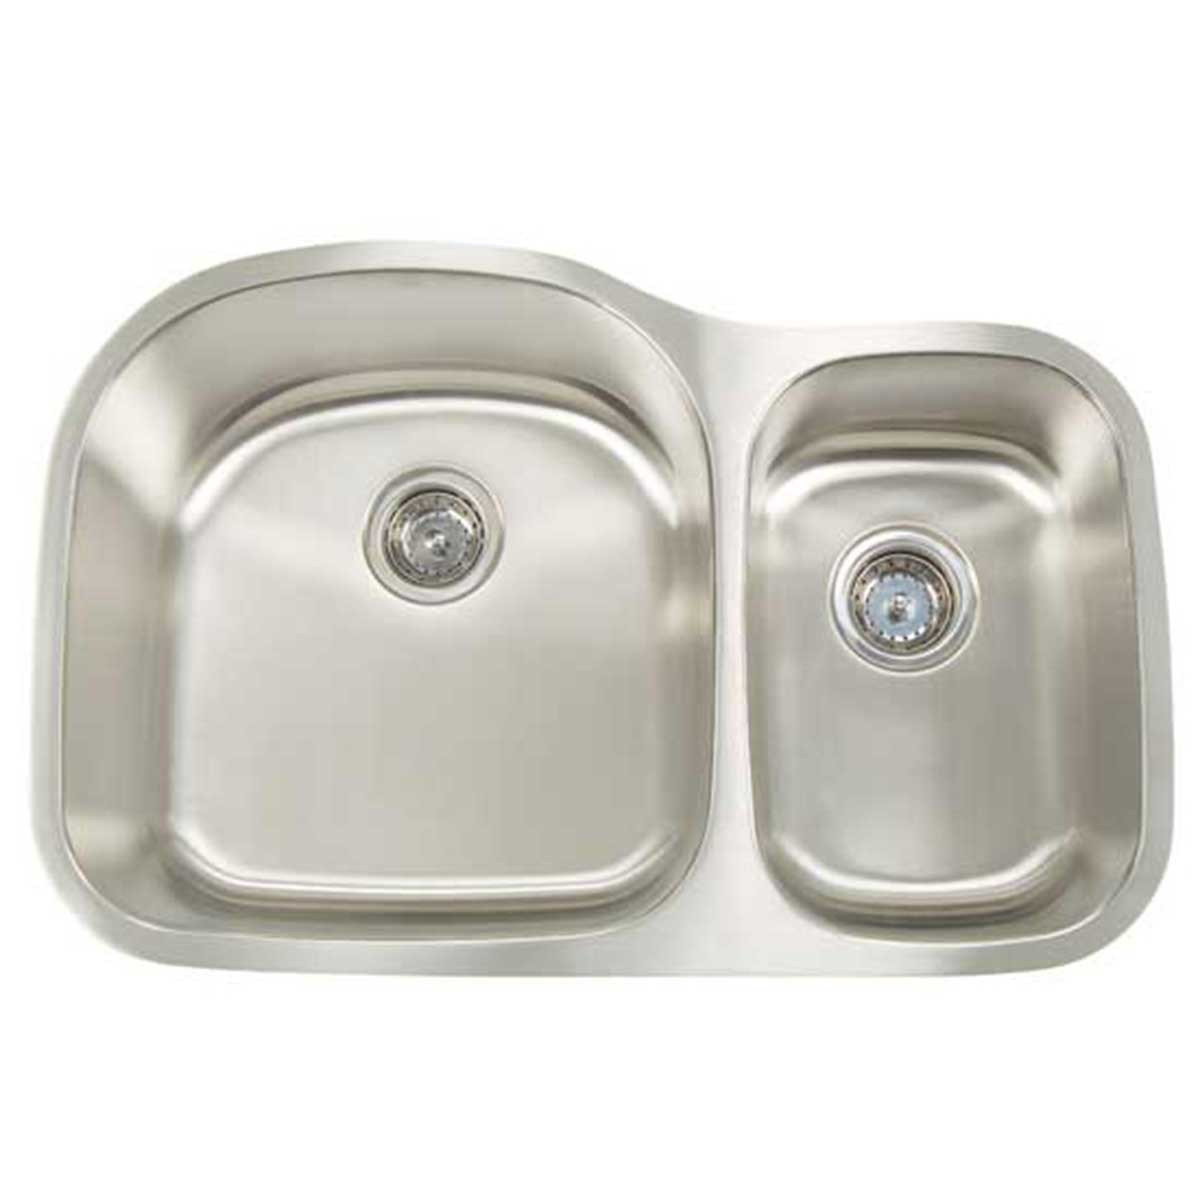 Artisan Sinks Double Bowl Sinks